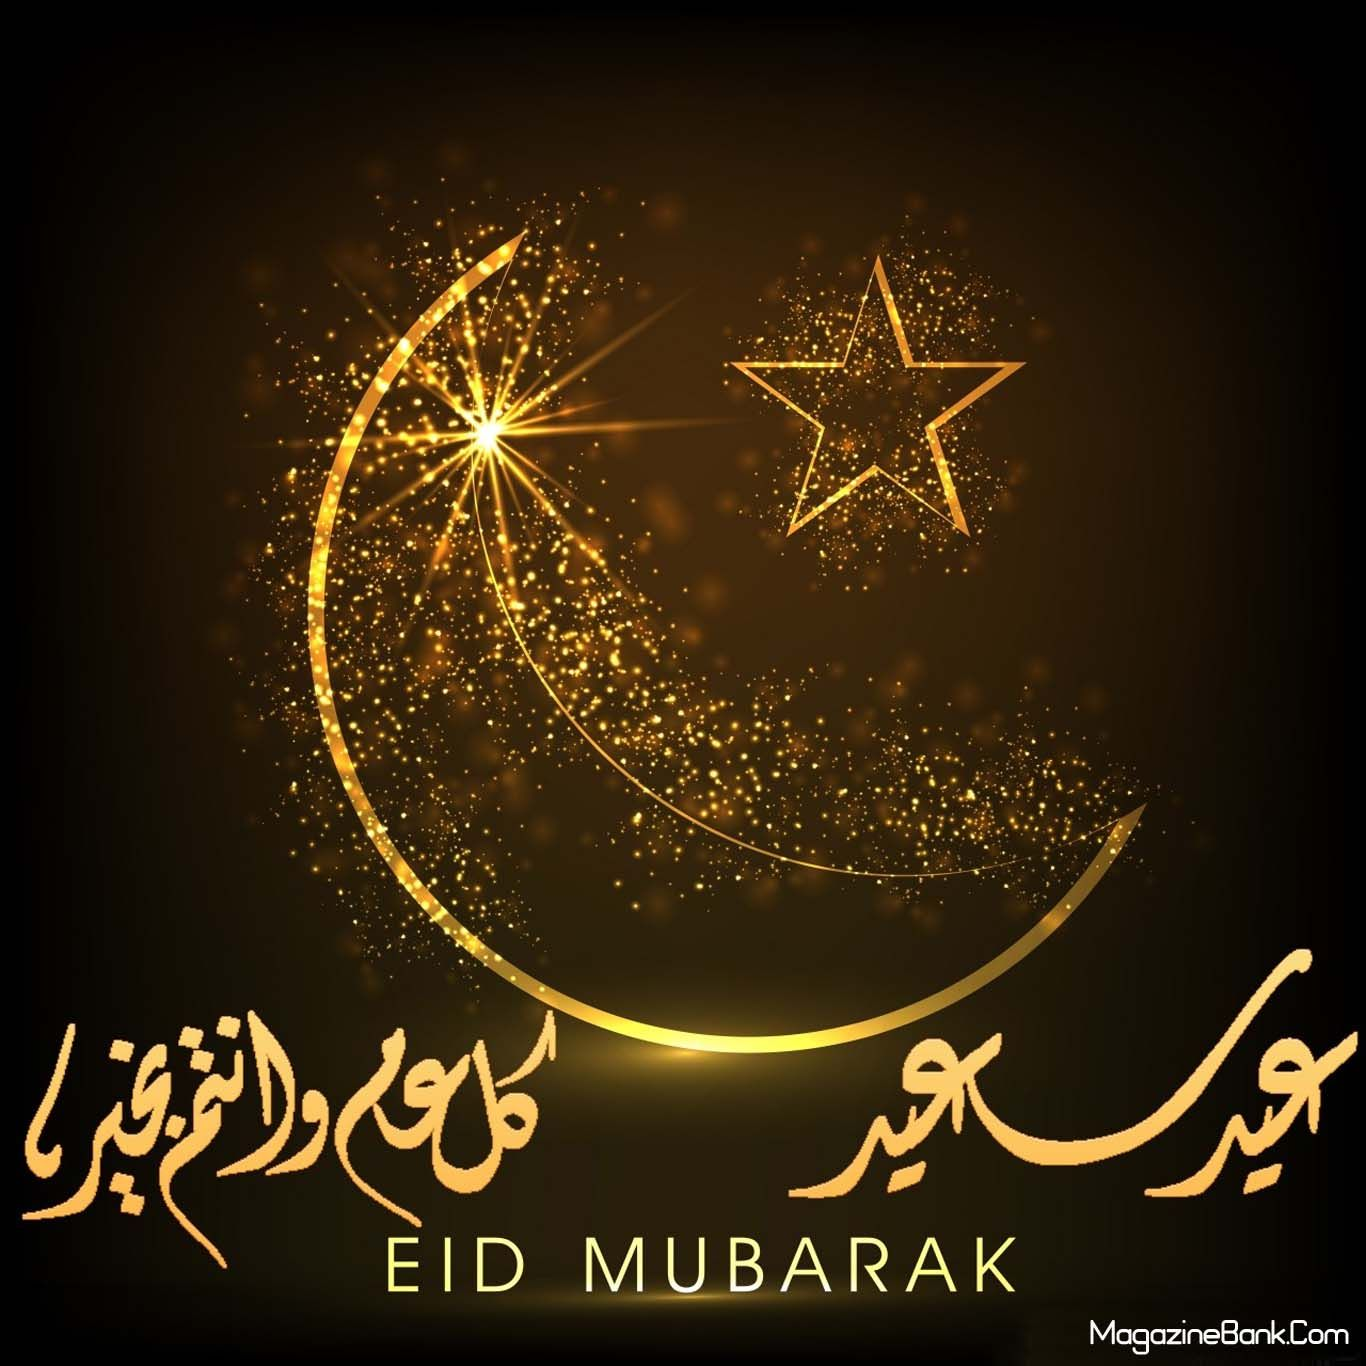 Eid mubarak 2015 images and hd wallpapers free download sms wishes eid mubarak 2015 images and hd wallpapers free download sms wishes poetry eid pinterest eid mubarak eid and allah kristyandbryce Image collections